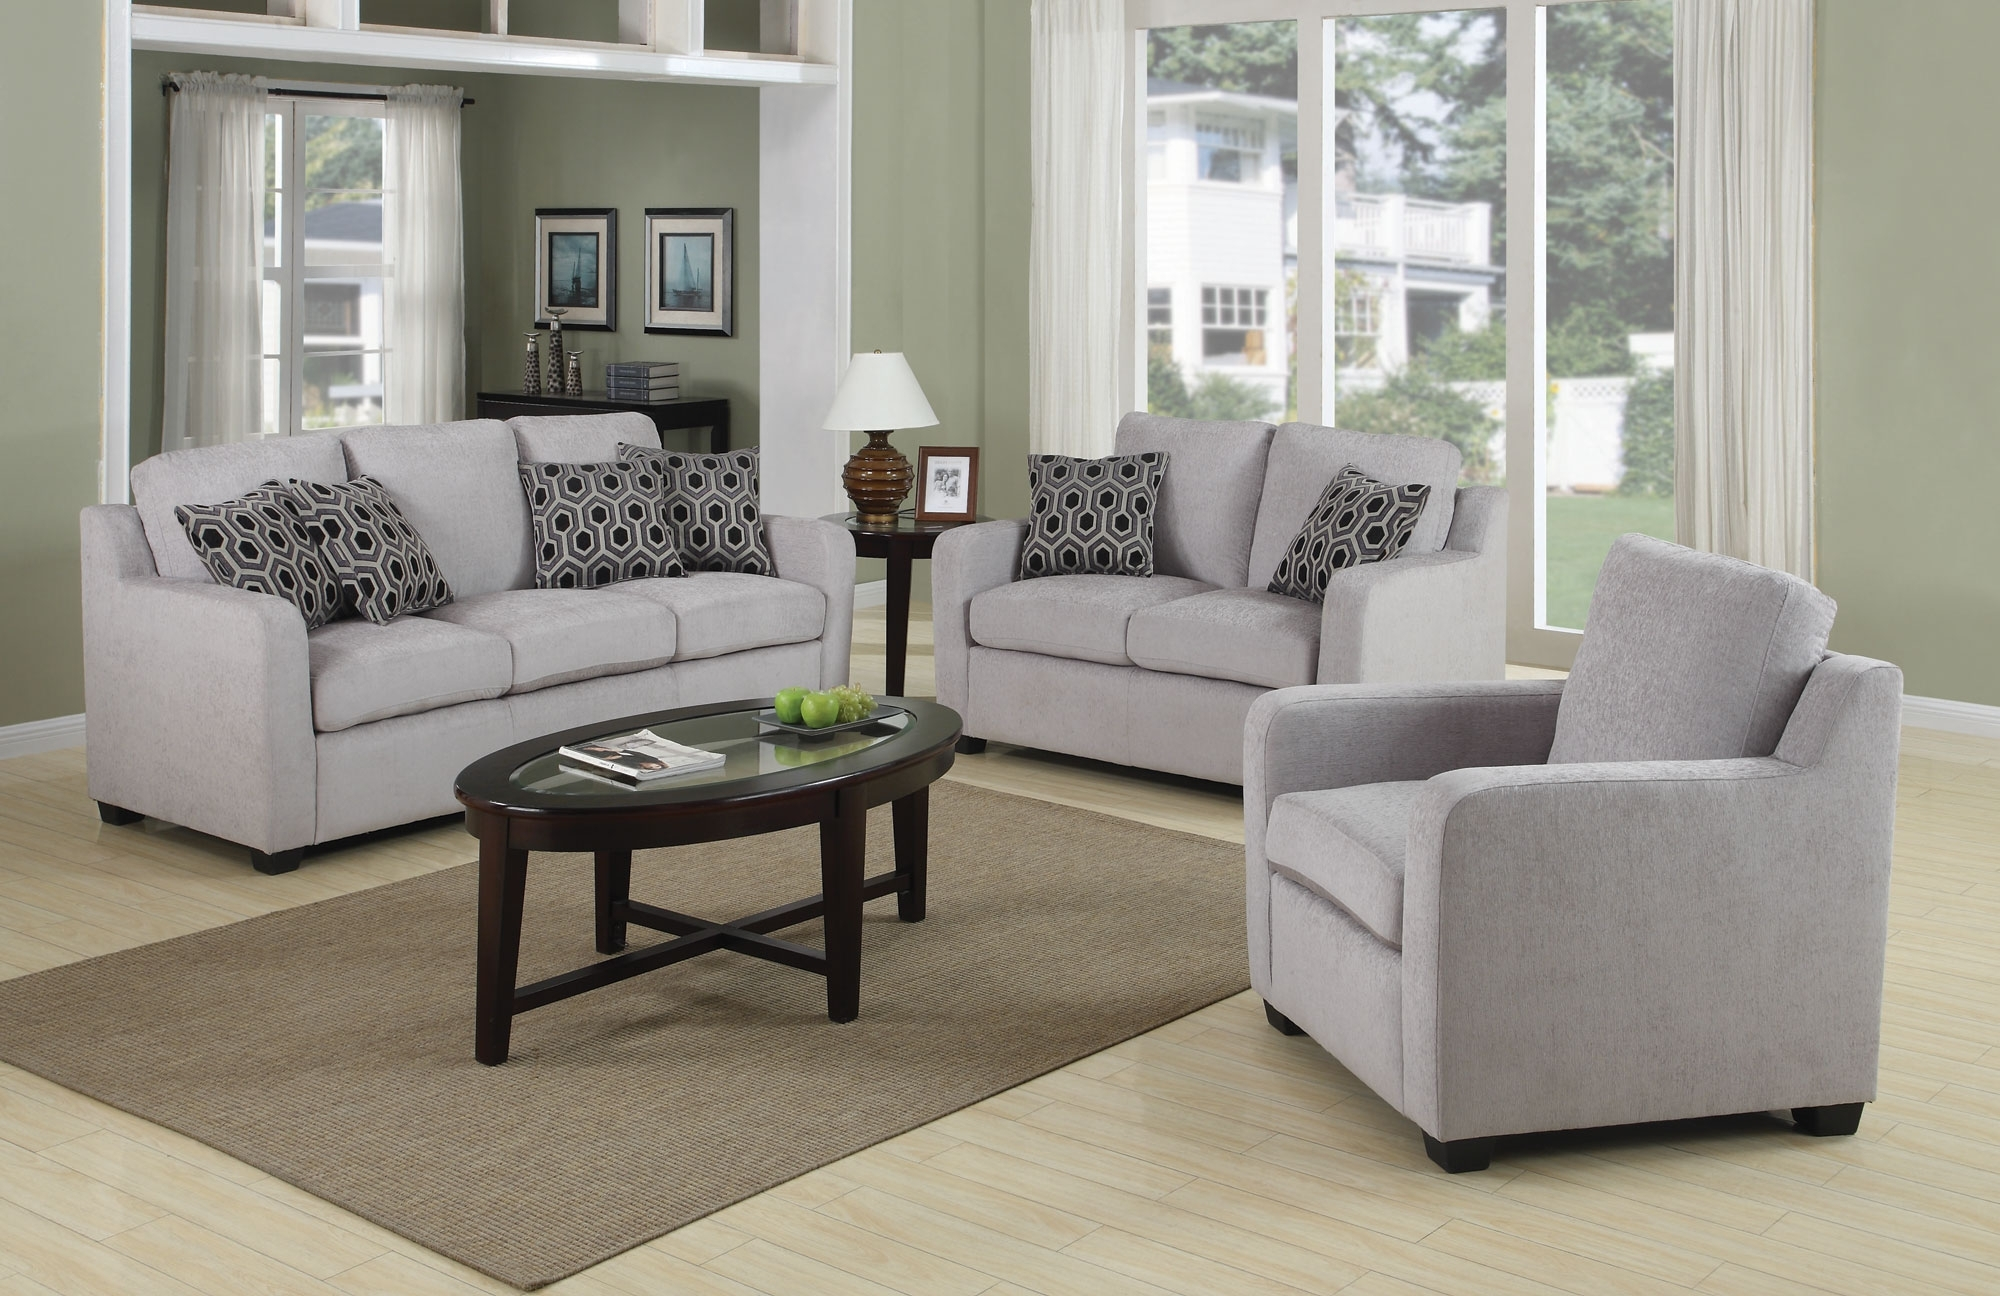 Current Sofa Chairs For Living Room In Furniture: Amazing Set Of Chairs For Living Room 3 Piece Living (View 4 of 20)